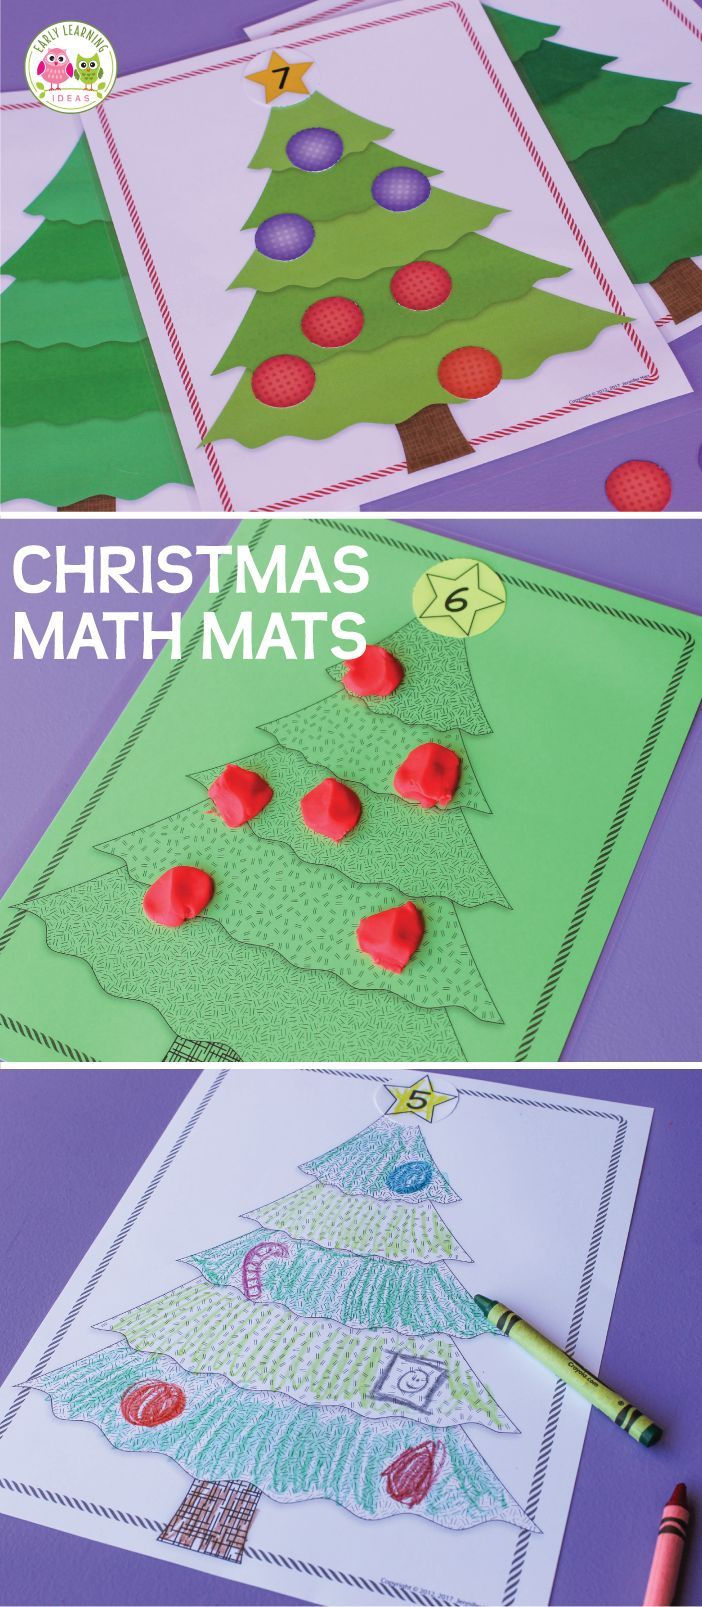 Hands-on Christmas math activities for preschool, pre-k and kindergarten. These Christmas math activity mats can be used with the printable counters or with play dough. Use the black and white version and kids can color and draw their own ornaments on the Christmas tree. Perfect for your Christmas lesson plans, your Christmas around the world, or December them units.